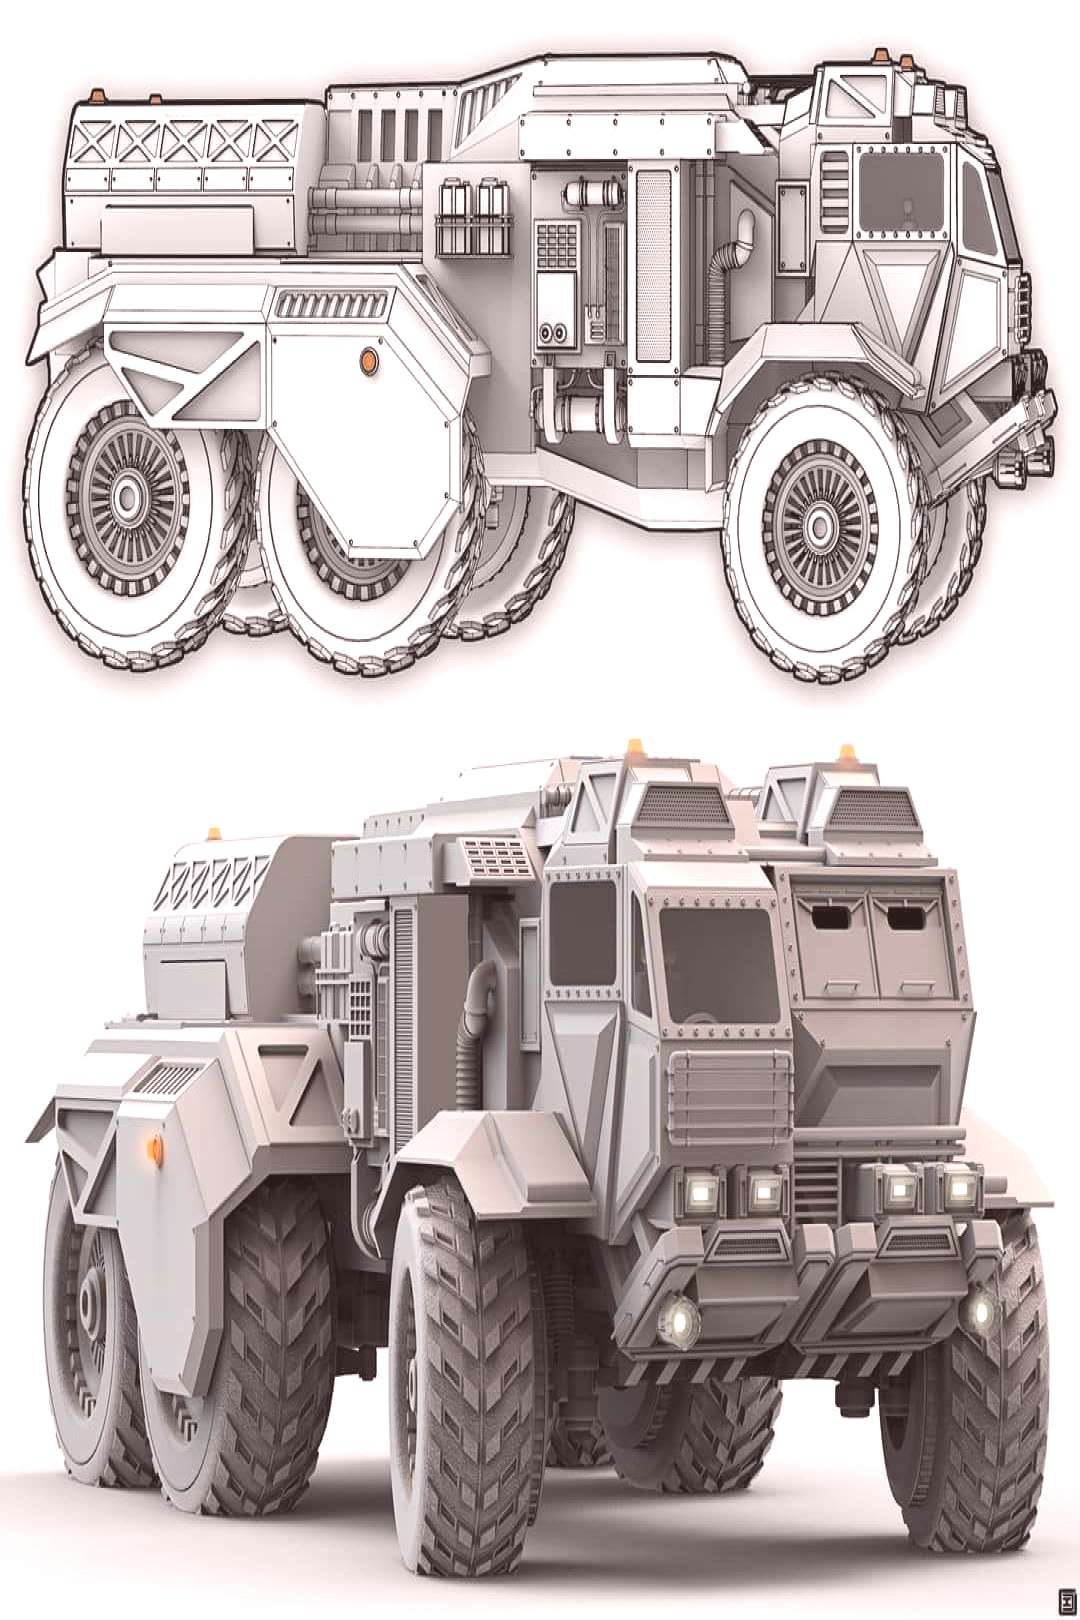 Planetary Utility Truck I was inspired to create this one after watching recently. I've always love